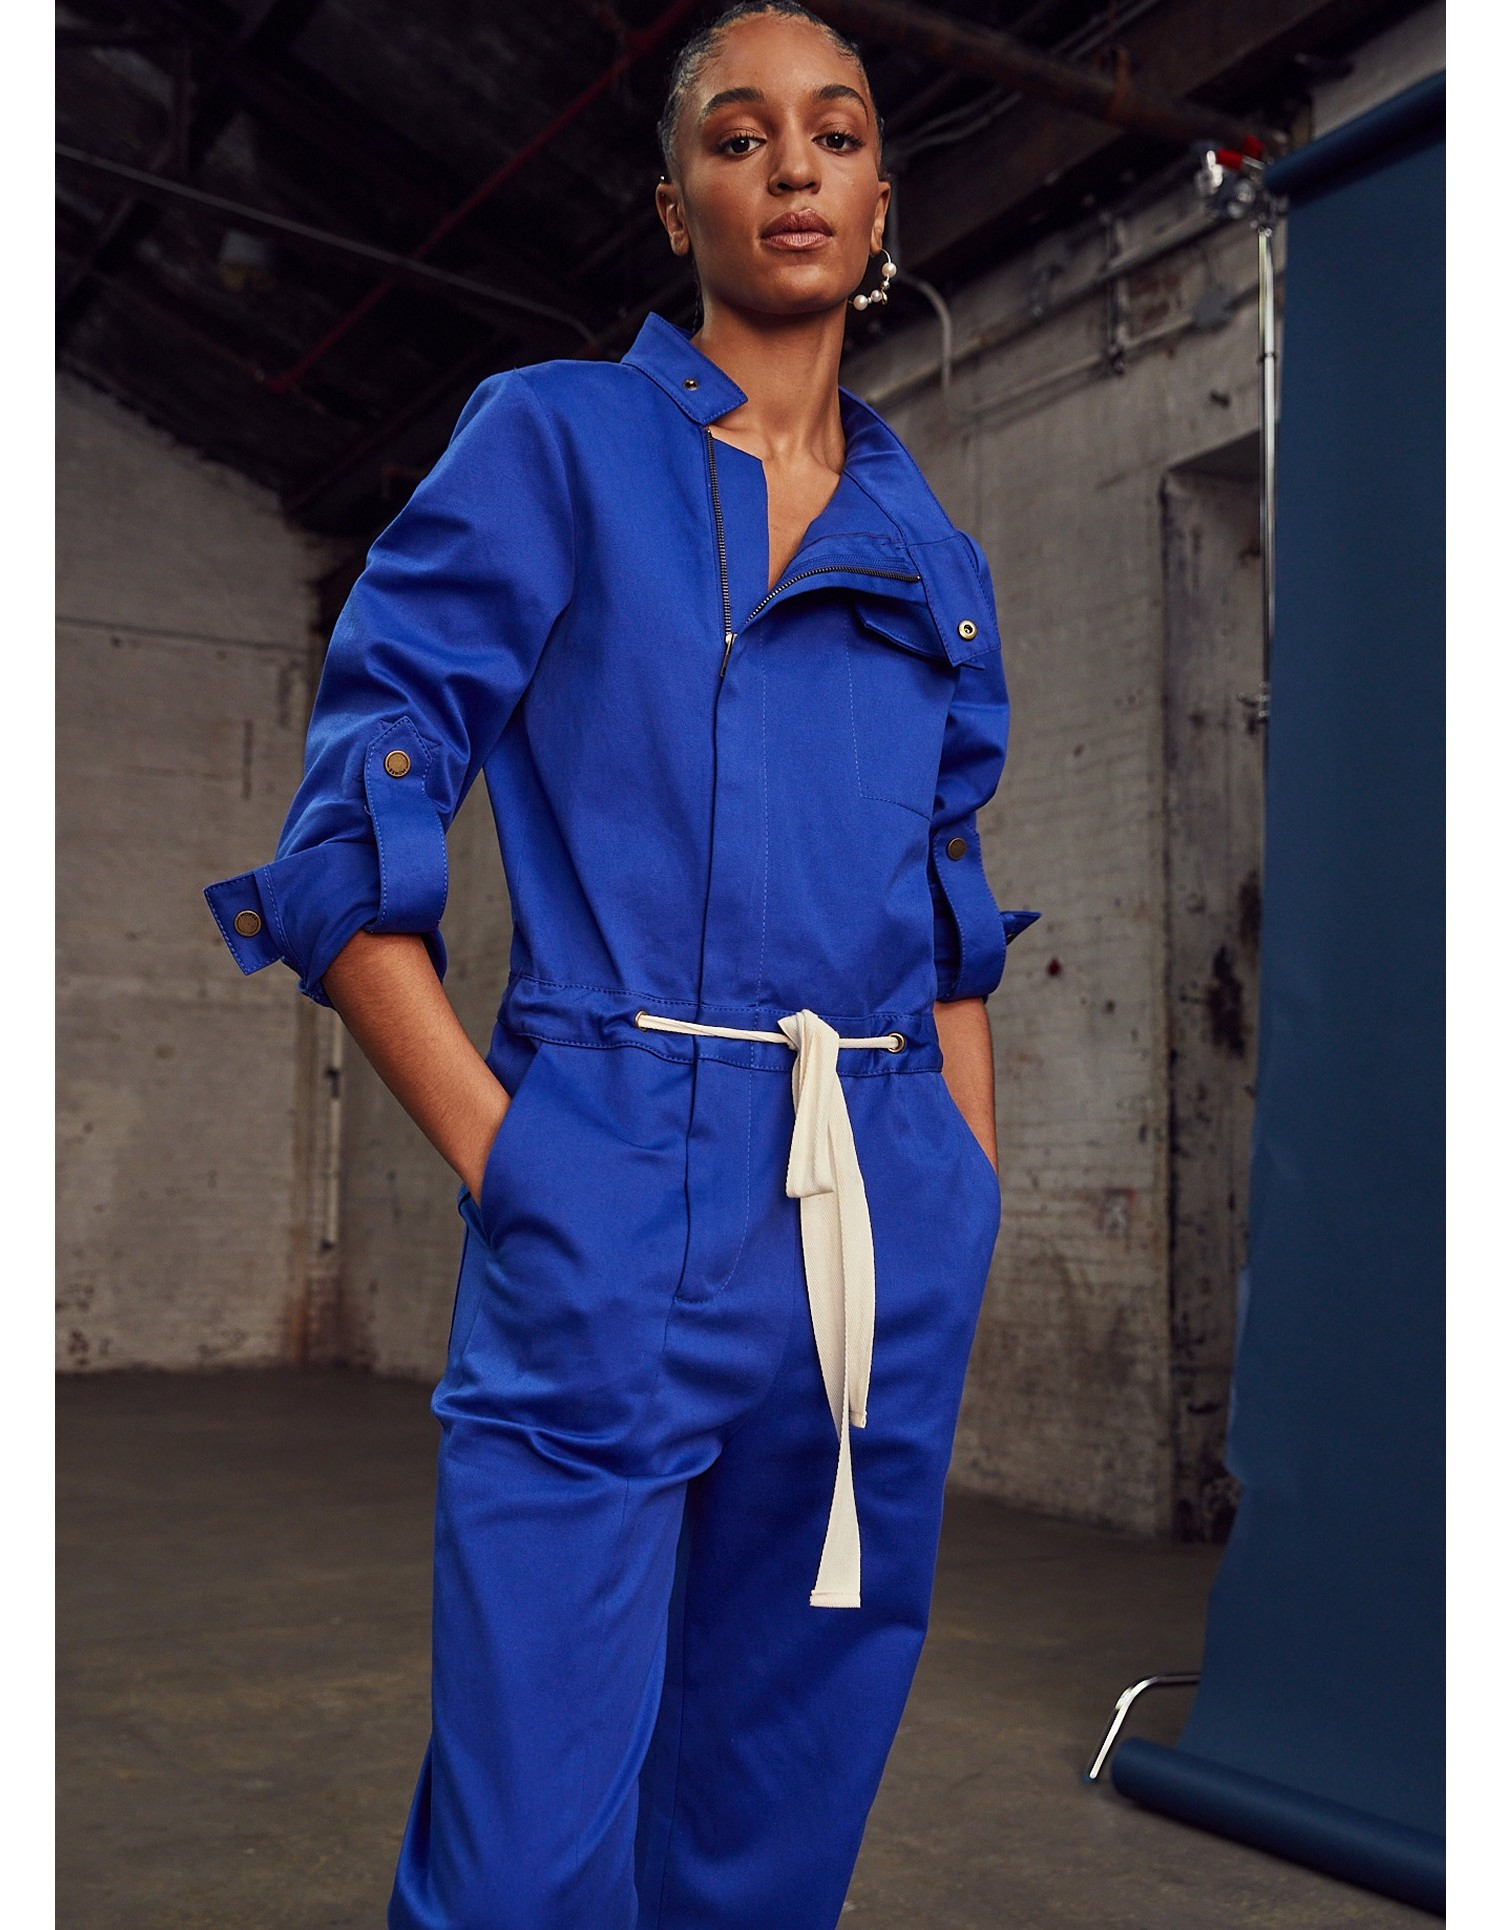 MONSE Racer Jumpsuit in Electric Blue on Model Front Detail View